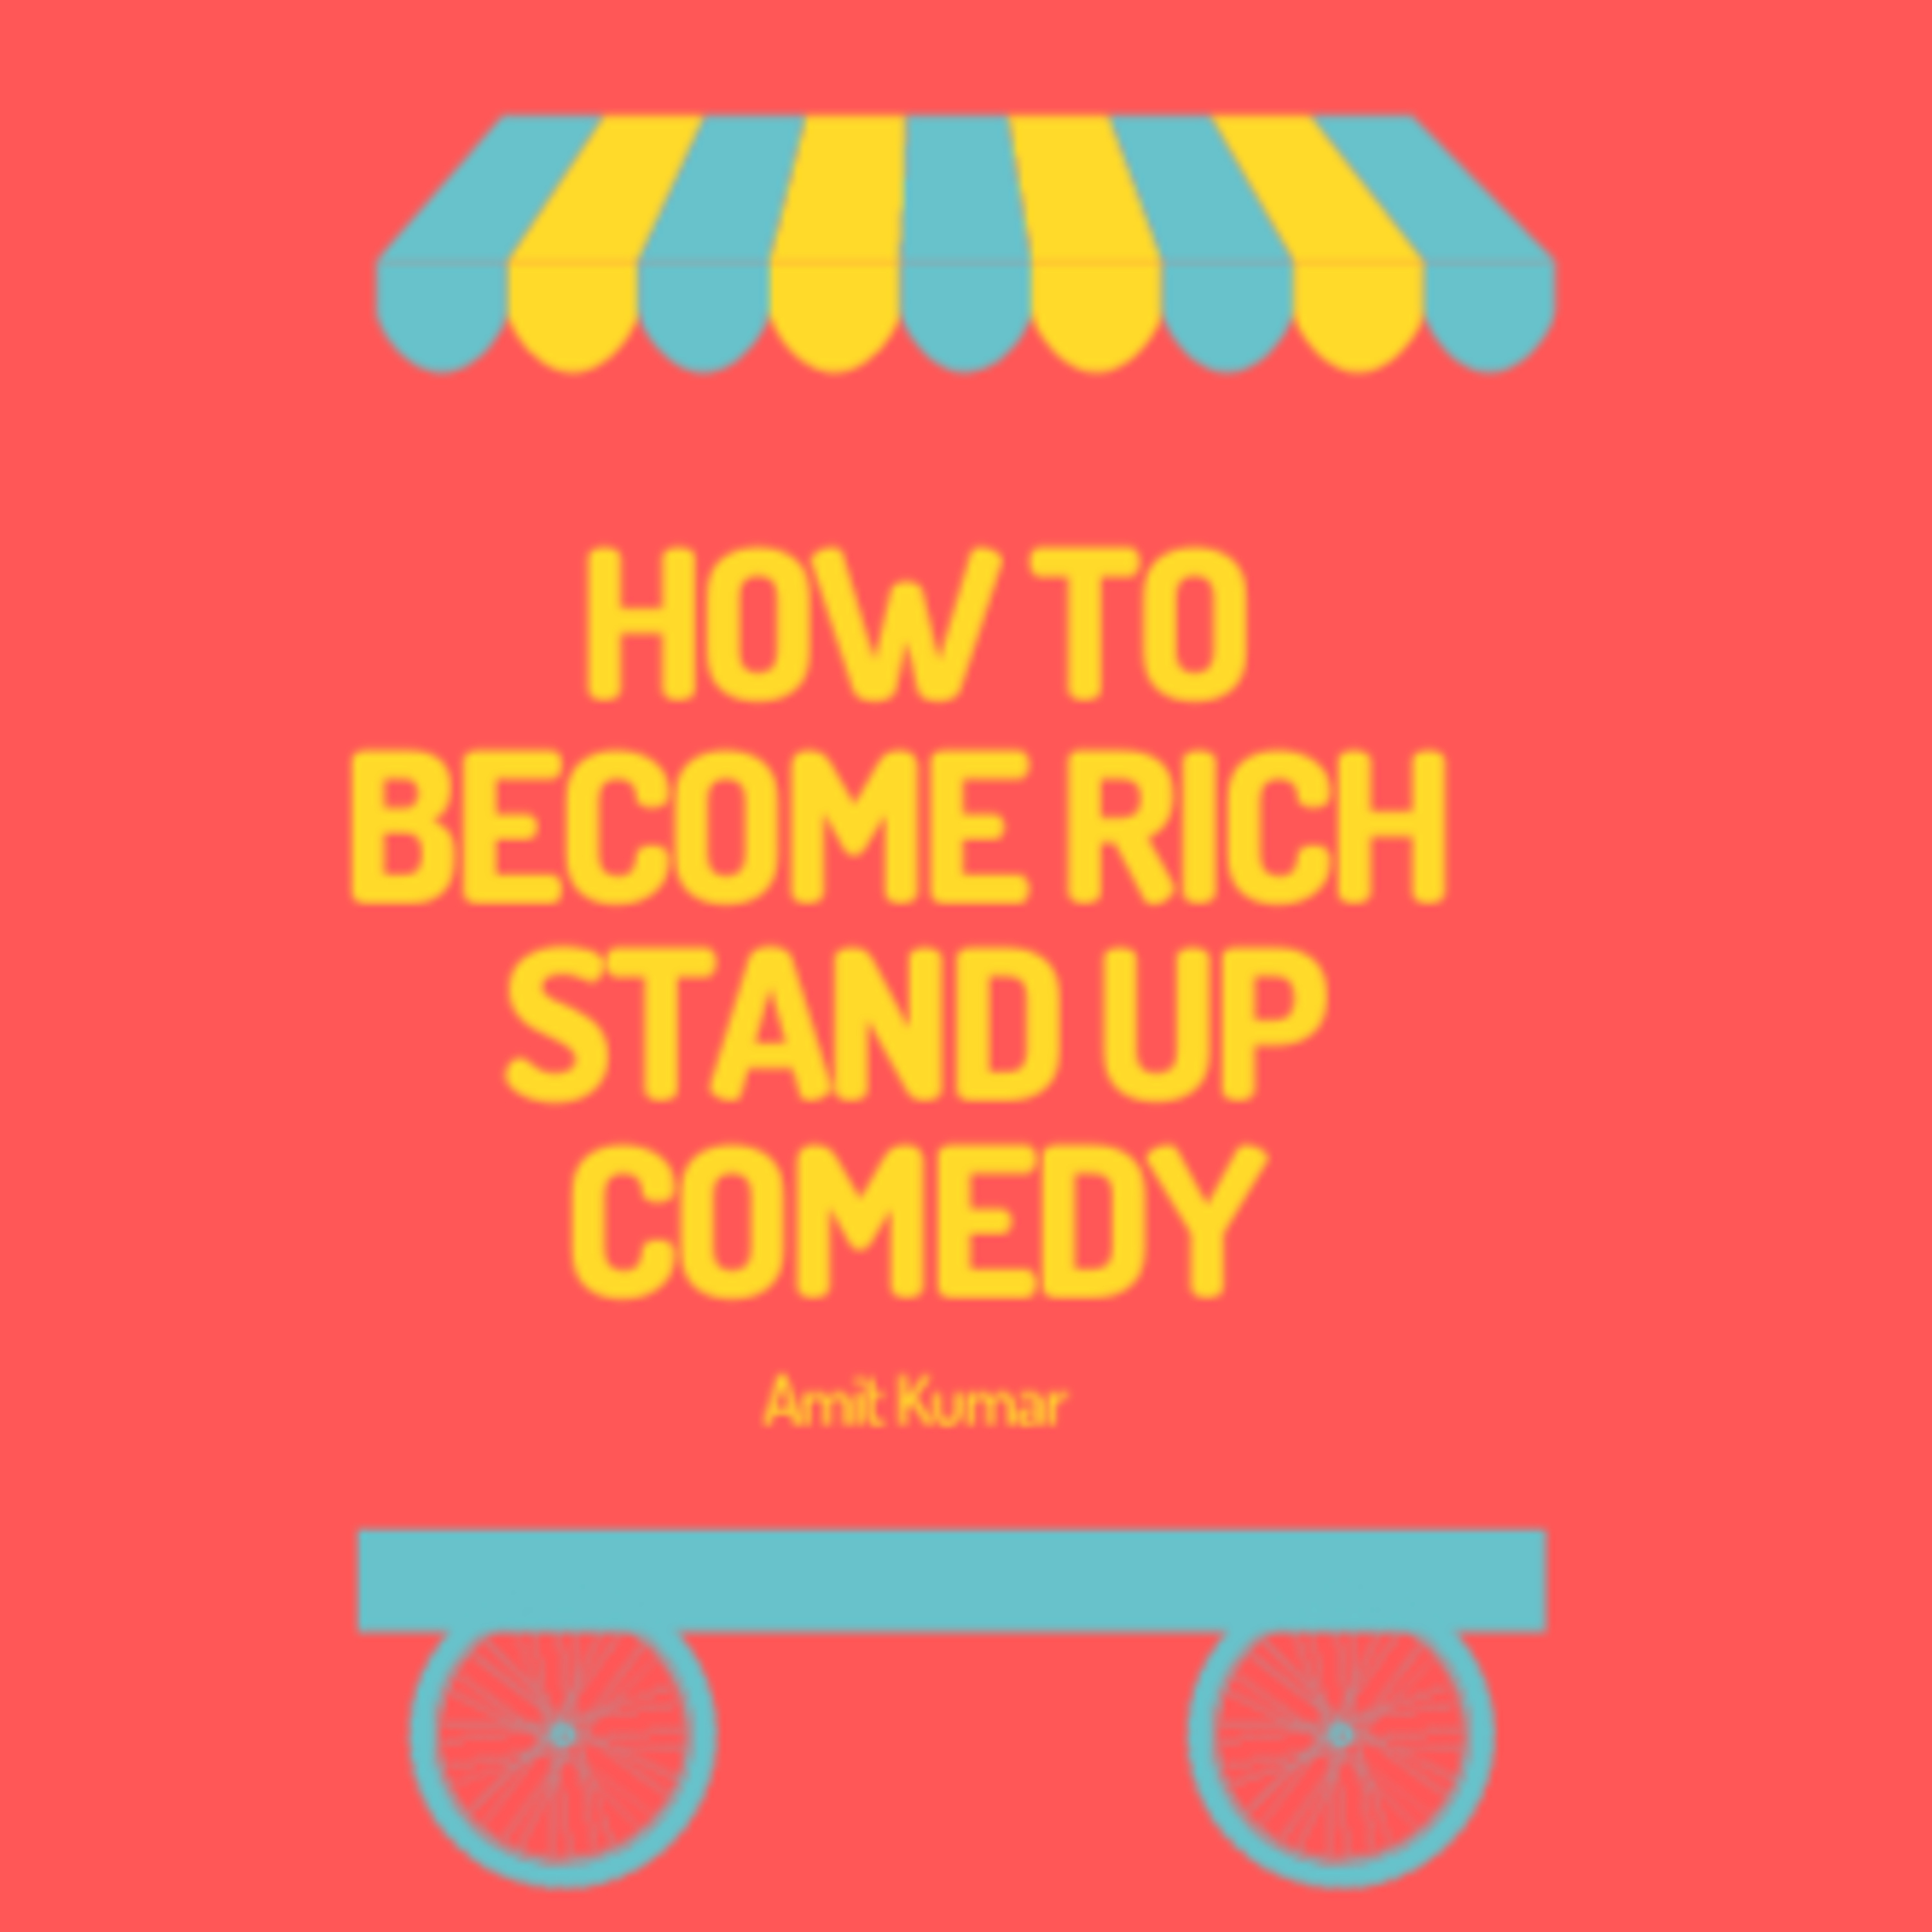 How to become Rich - Stand Up Comedy